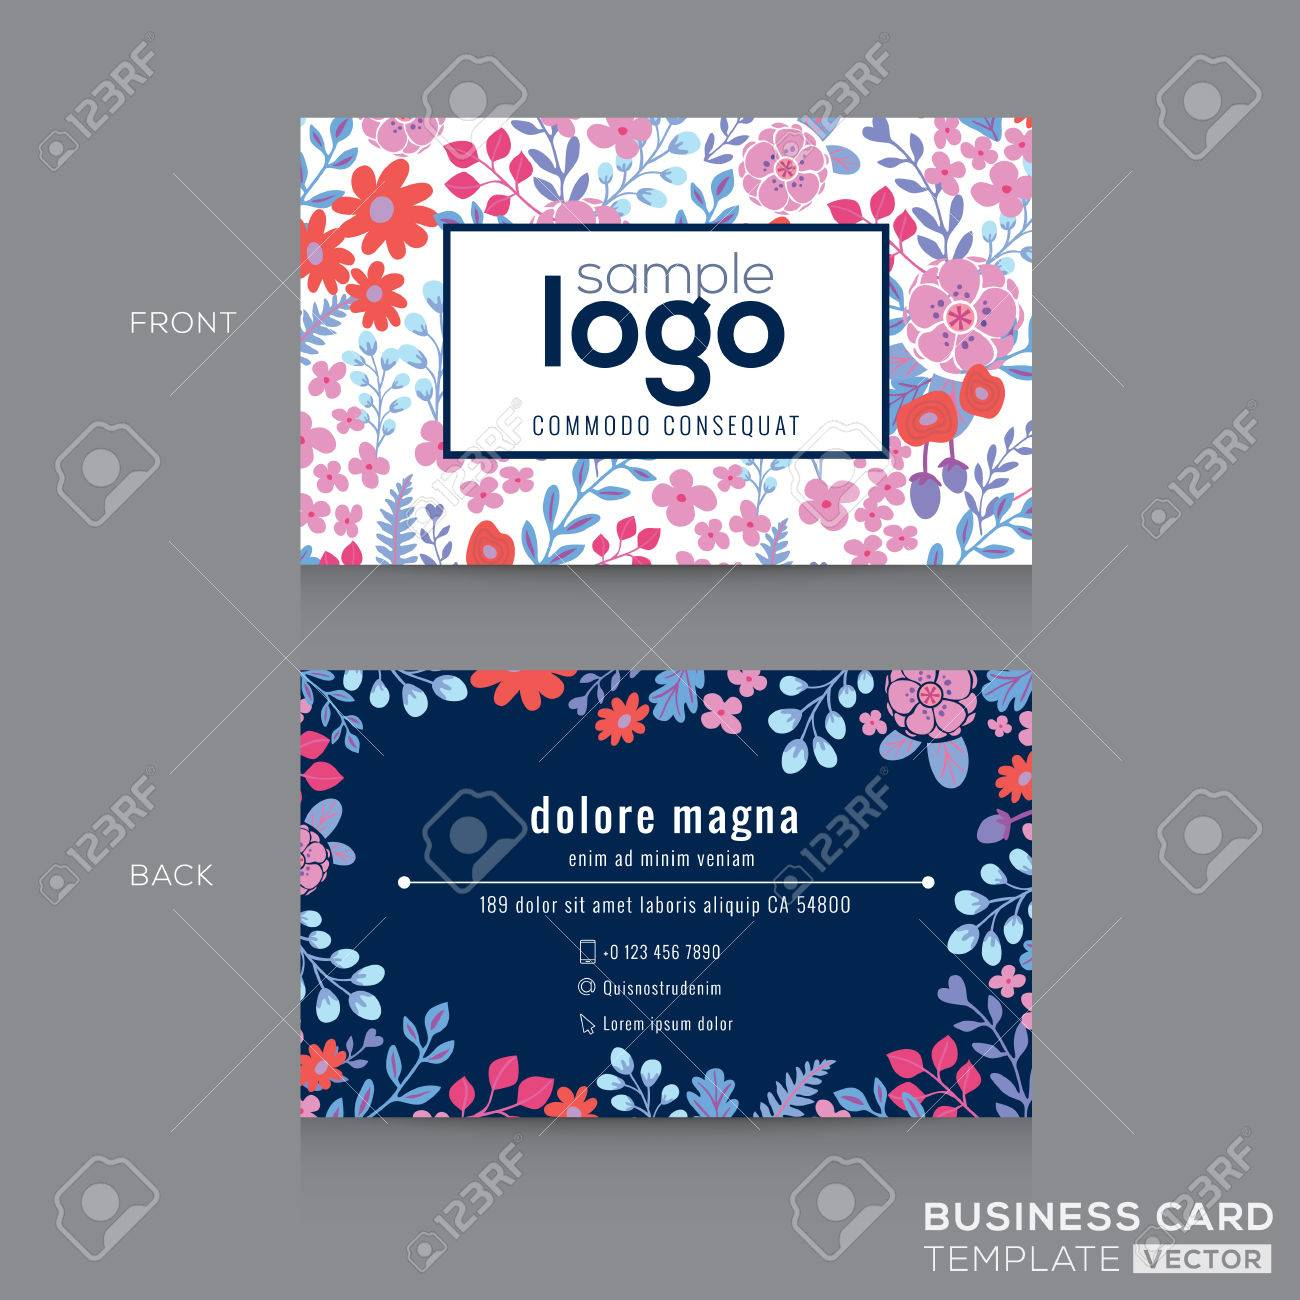 Cute Floral Pattern Business Card Name Card Design Template Royalty